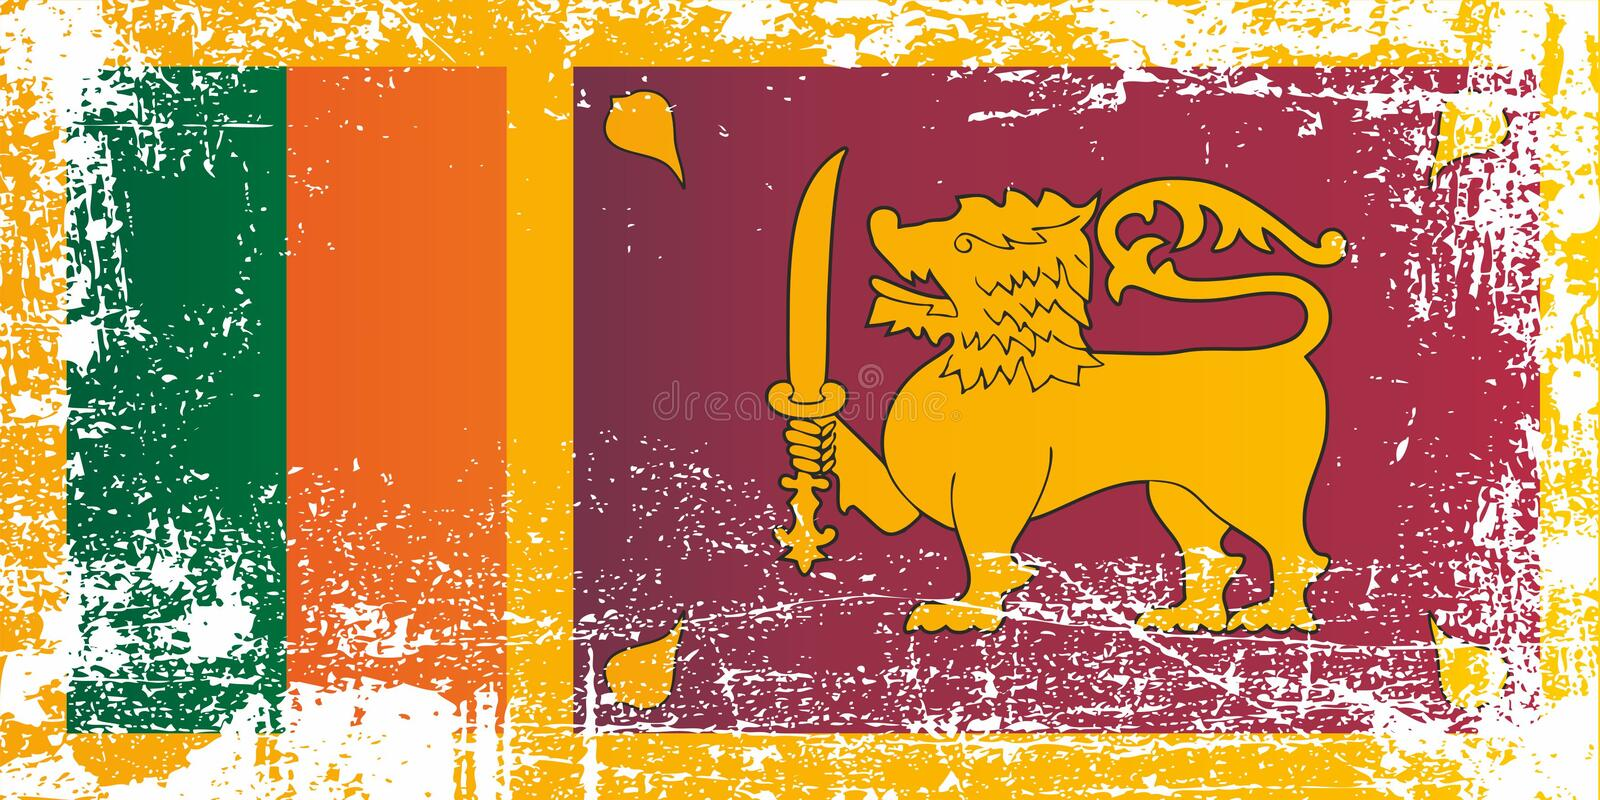 Flag of Sri Lanka, Democratic Socialist Republic of Sri Lanka. Wrinkled dirty spots. Can be used for design, stickers, souvenirs royalty free illustration